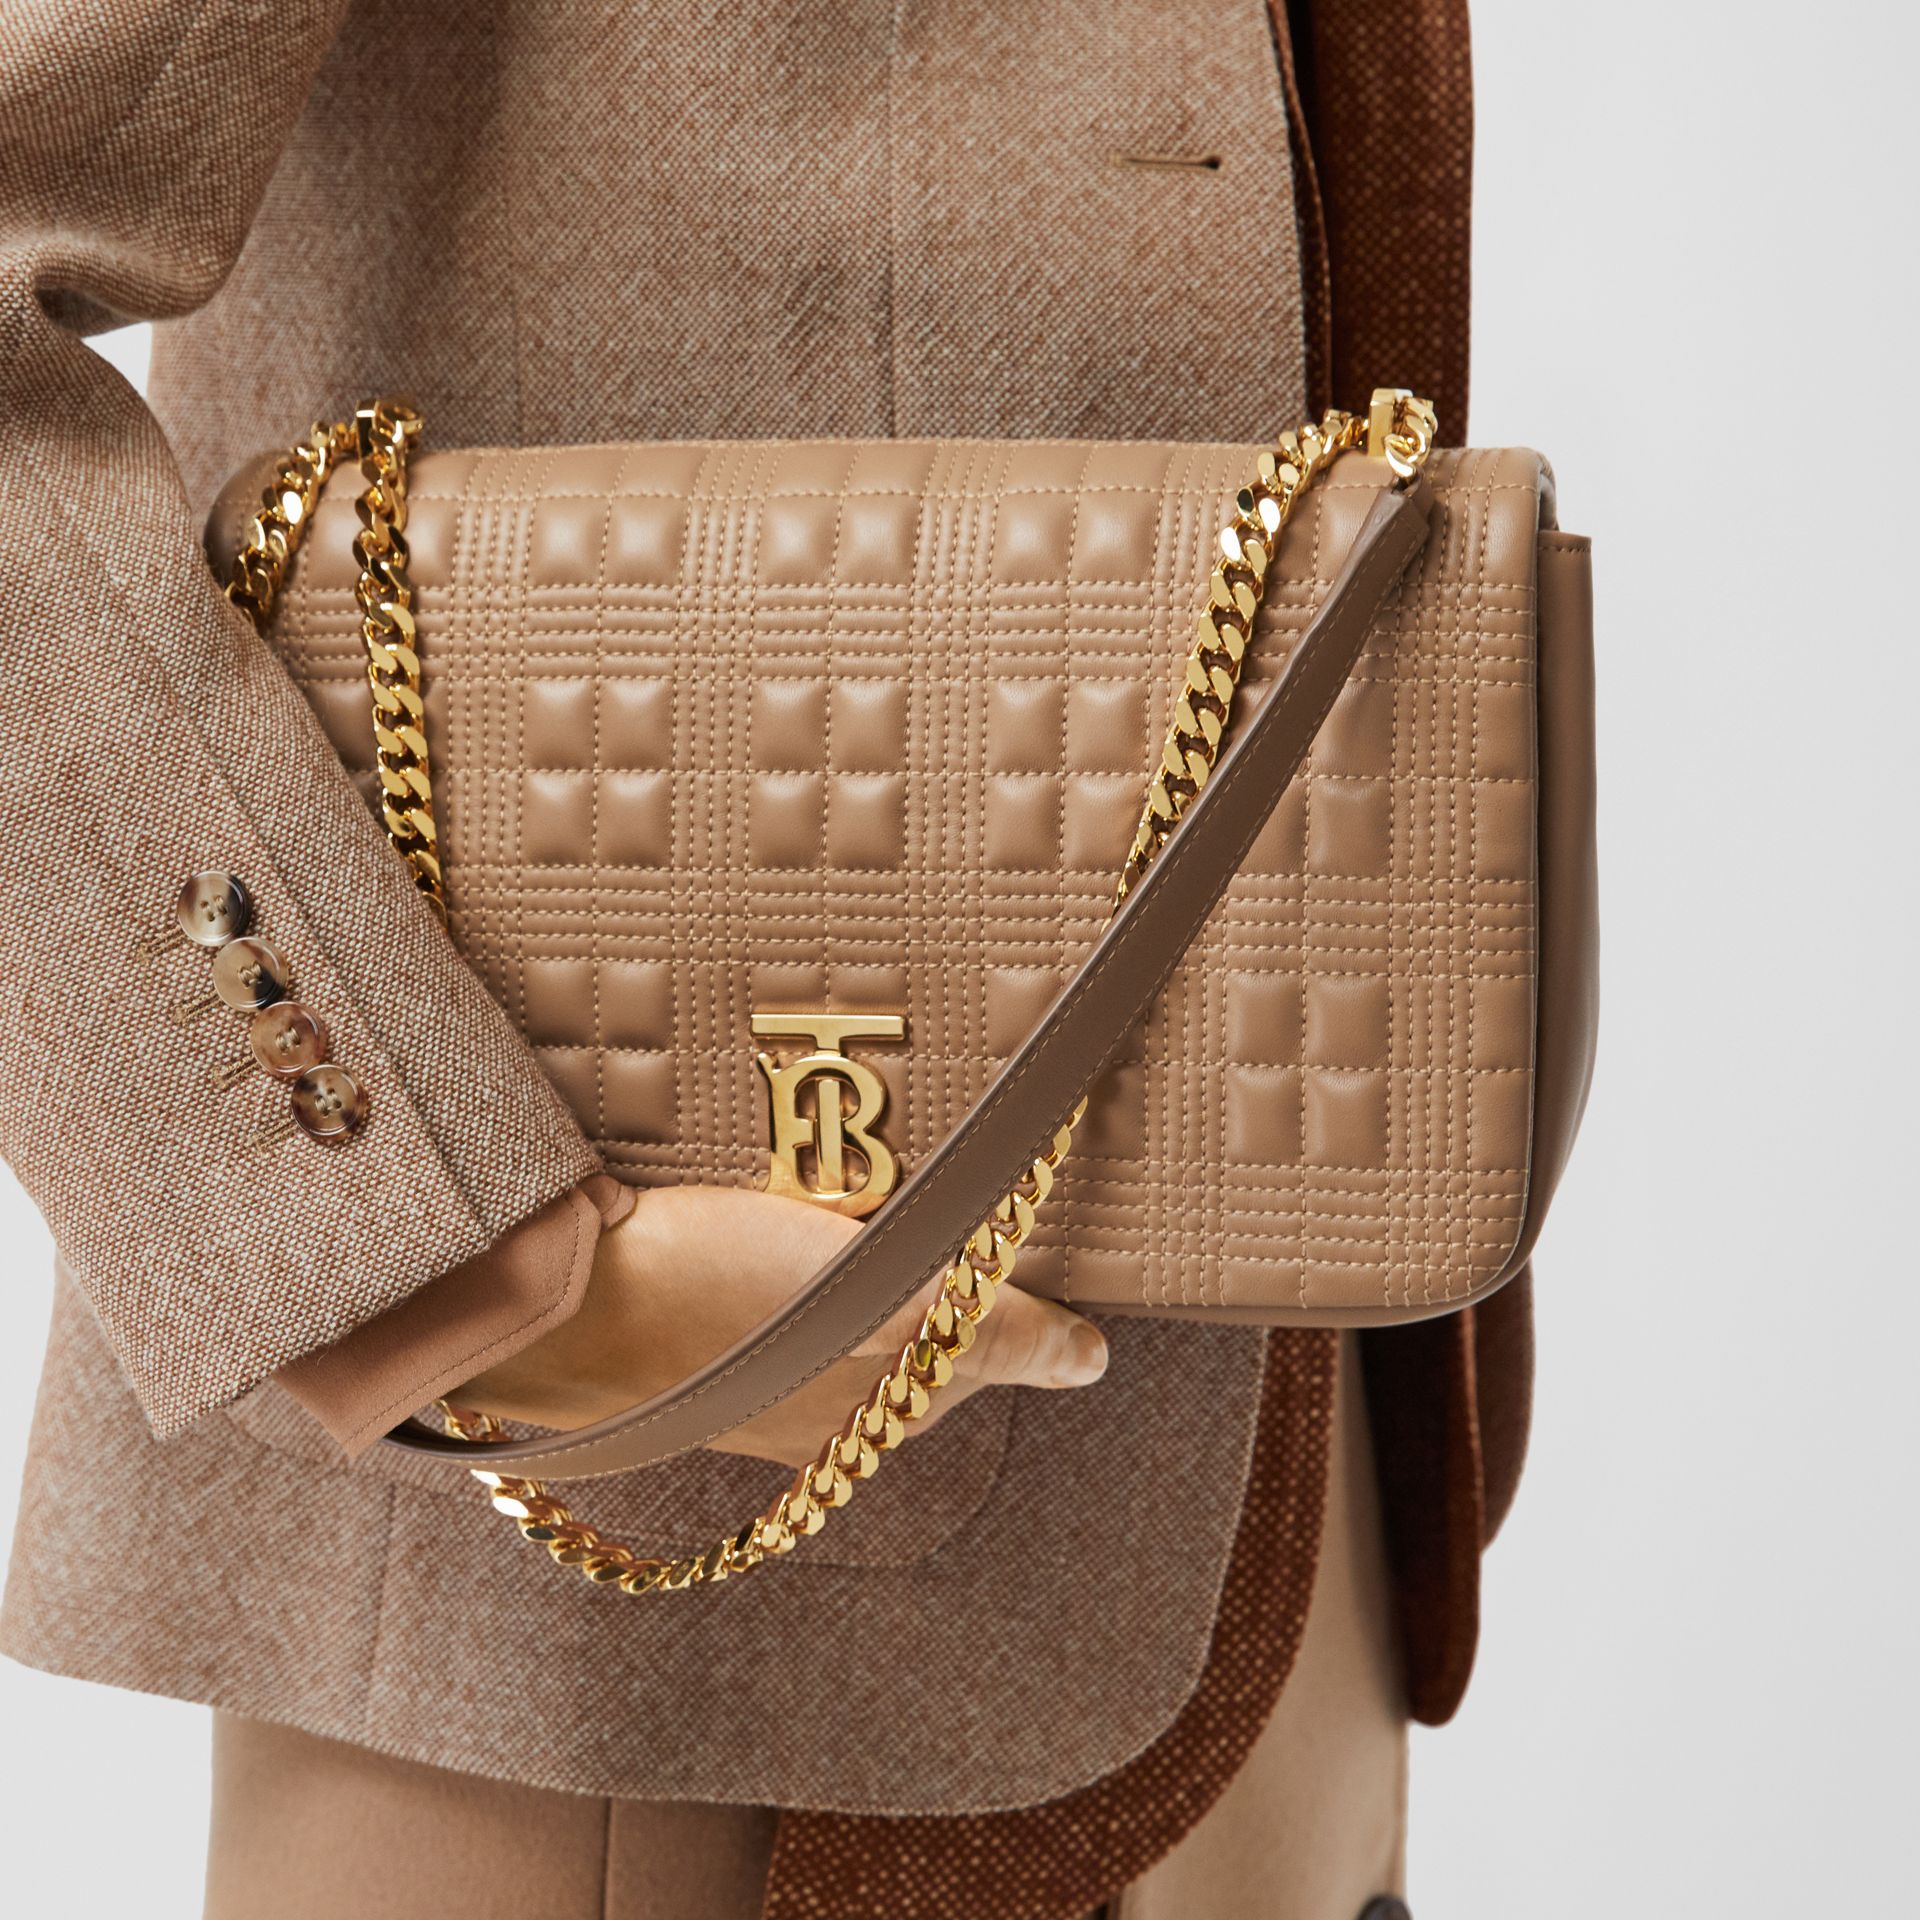 Medium Quilted Check Lambskin Lola Bag in Camel - Women | Burberry - gallery image 2